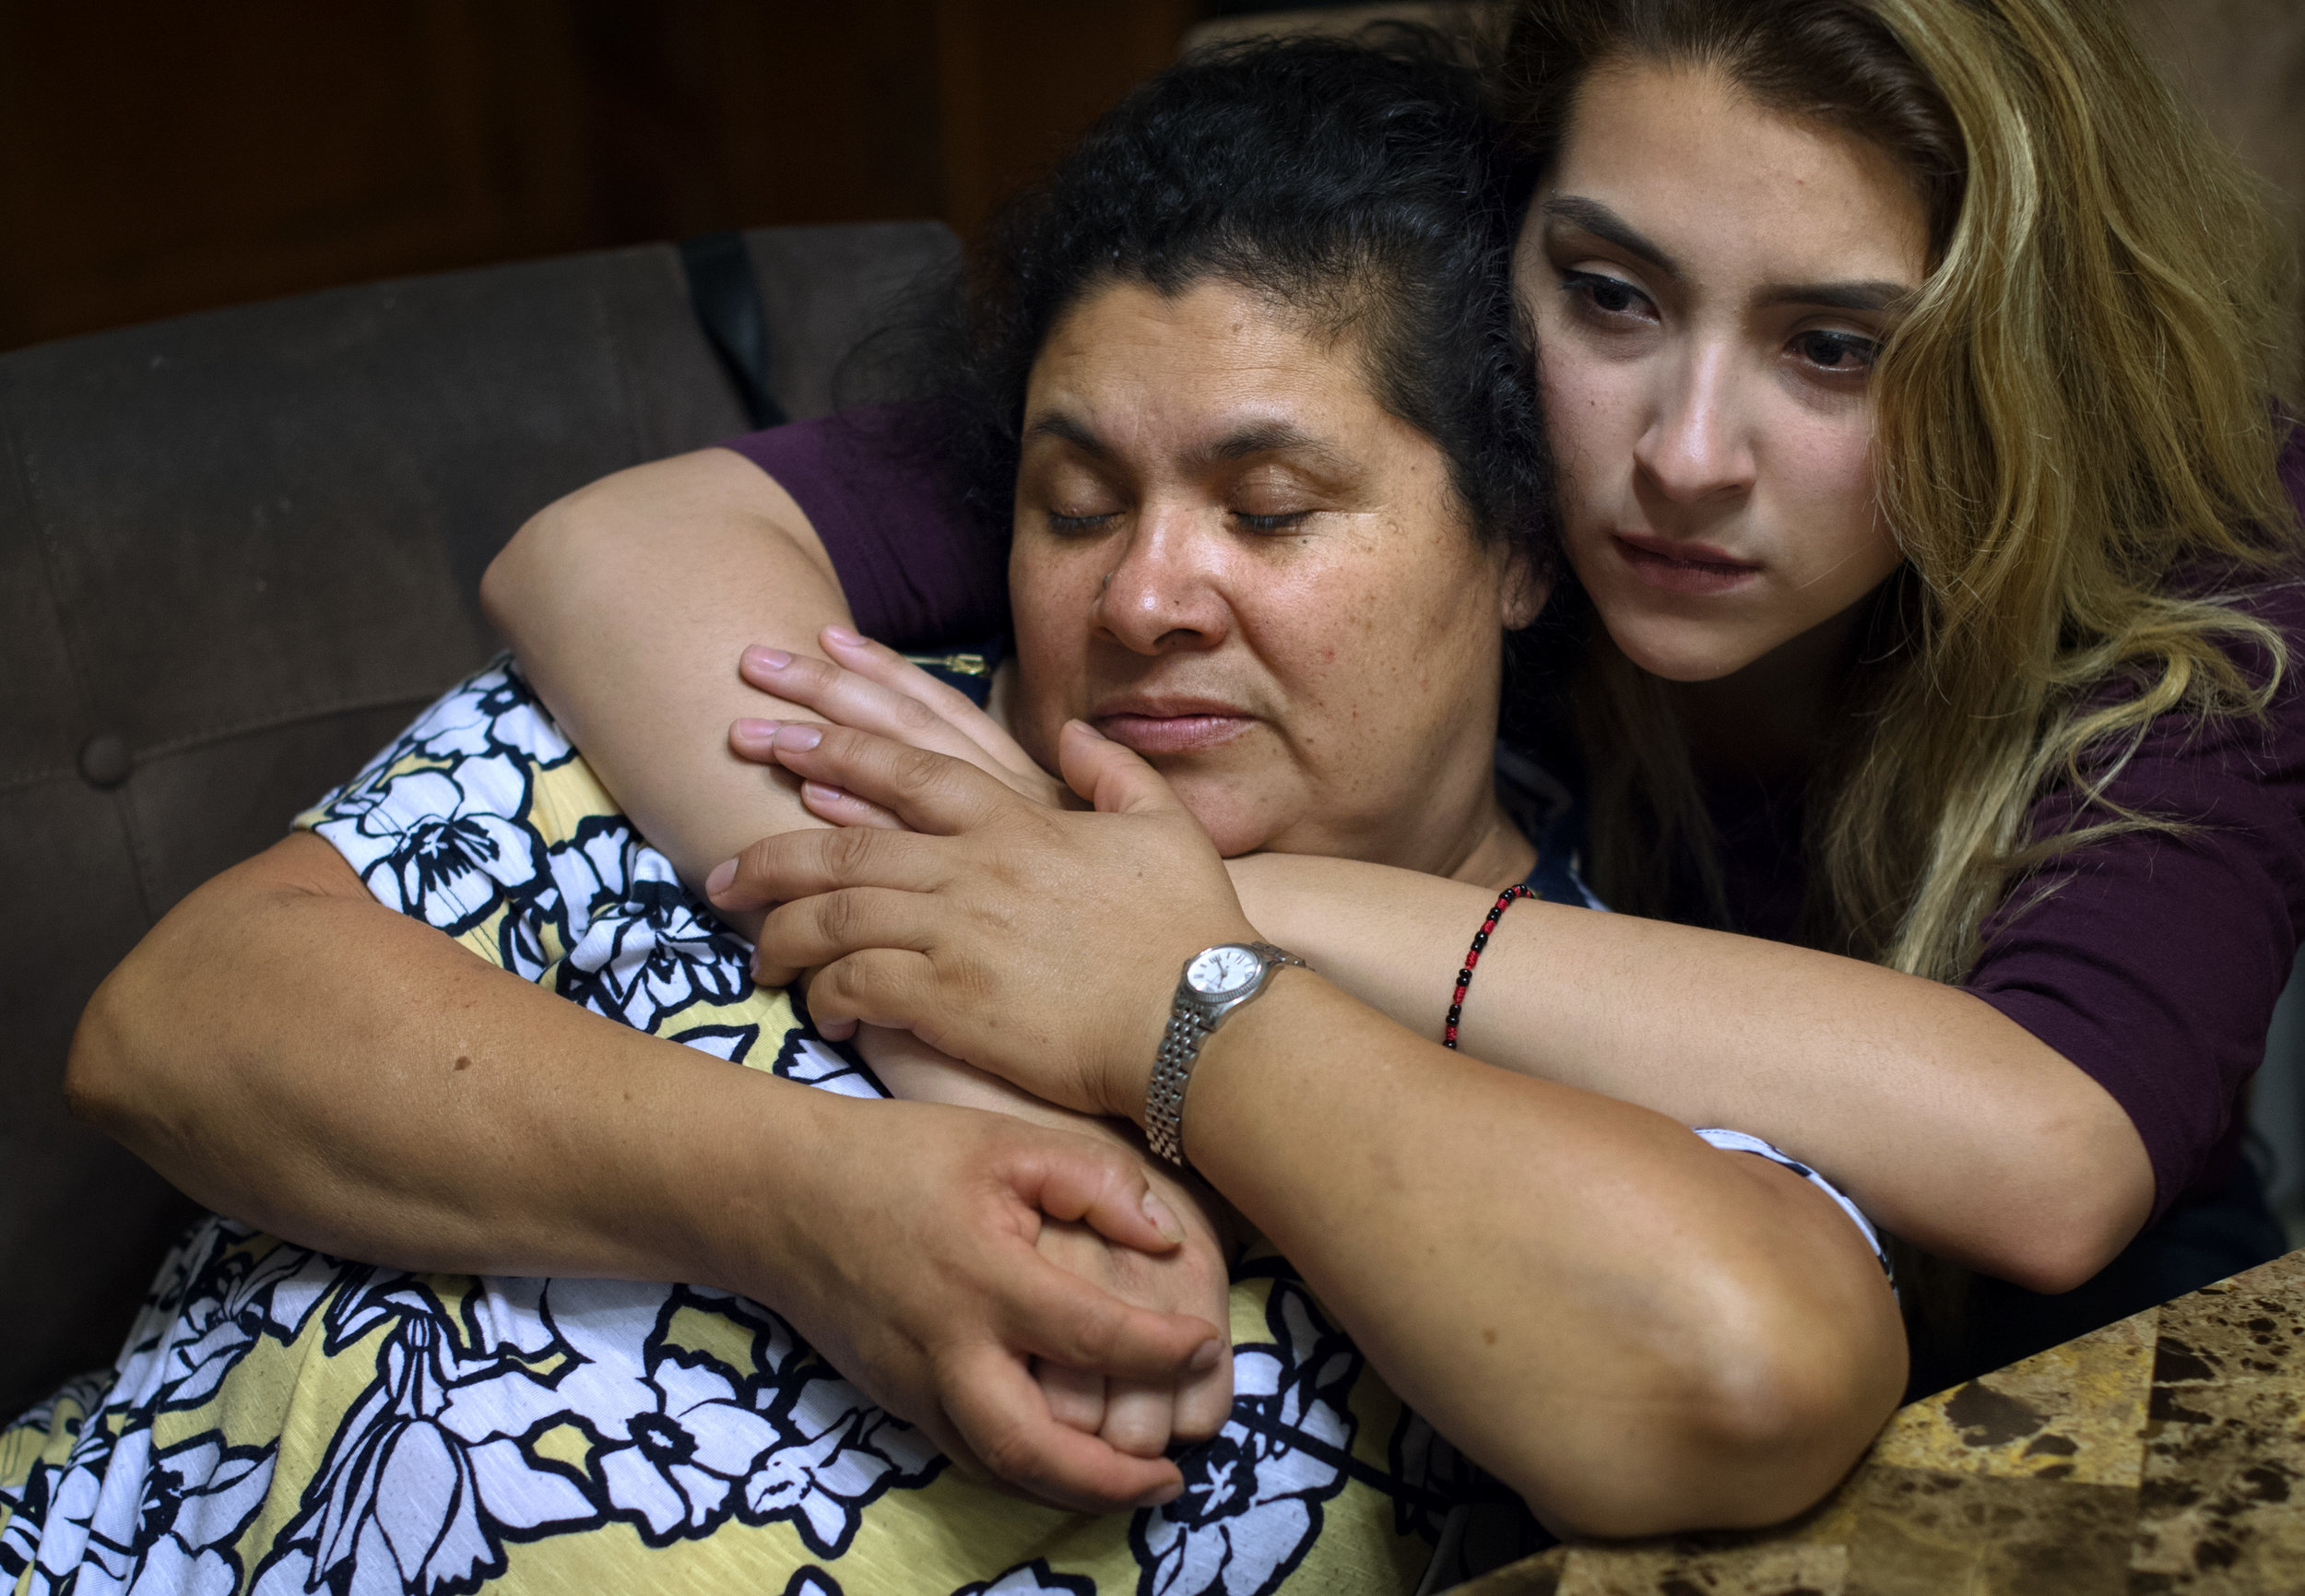 From left, Lourdes Salazar Bautista and her daughter Pamela Quintana-Salazar, 19, embrace during a meeting with anti-deportation campaign leaders at Bautista's home in Ann Arbor, Michigan, USA. The family hopes that Quintana-Salazar will file for a pardon when she turns 21, to fight her mother's 10-year ban from the U.S.